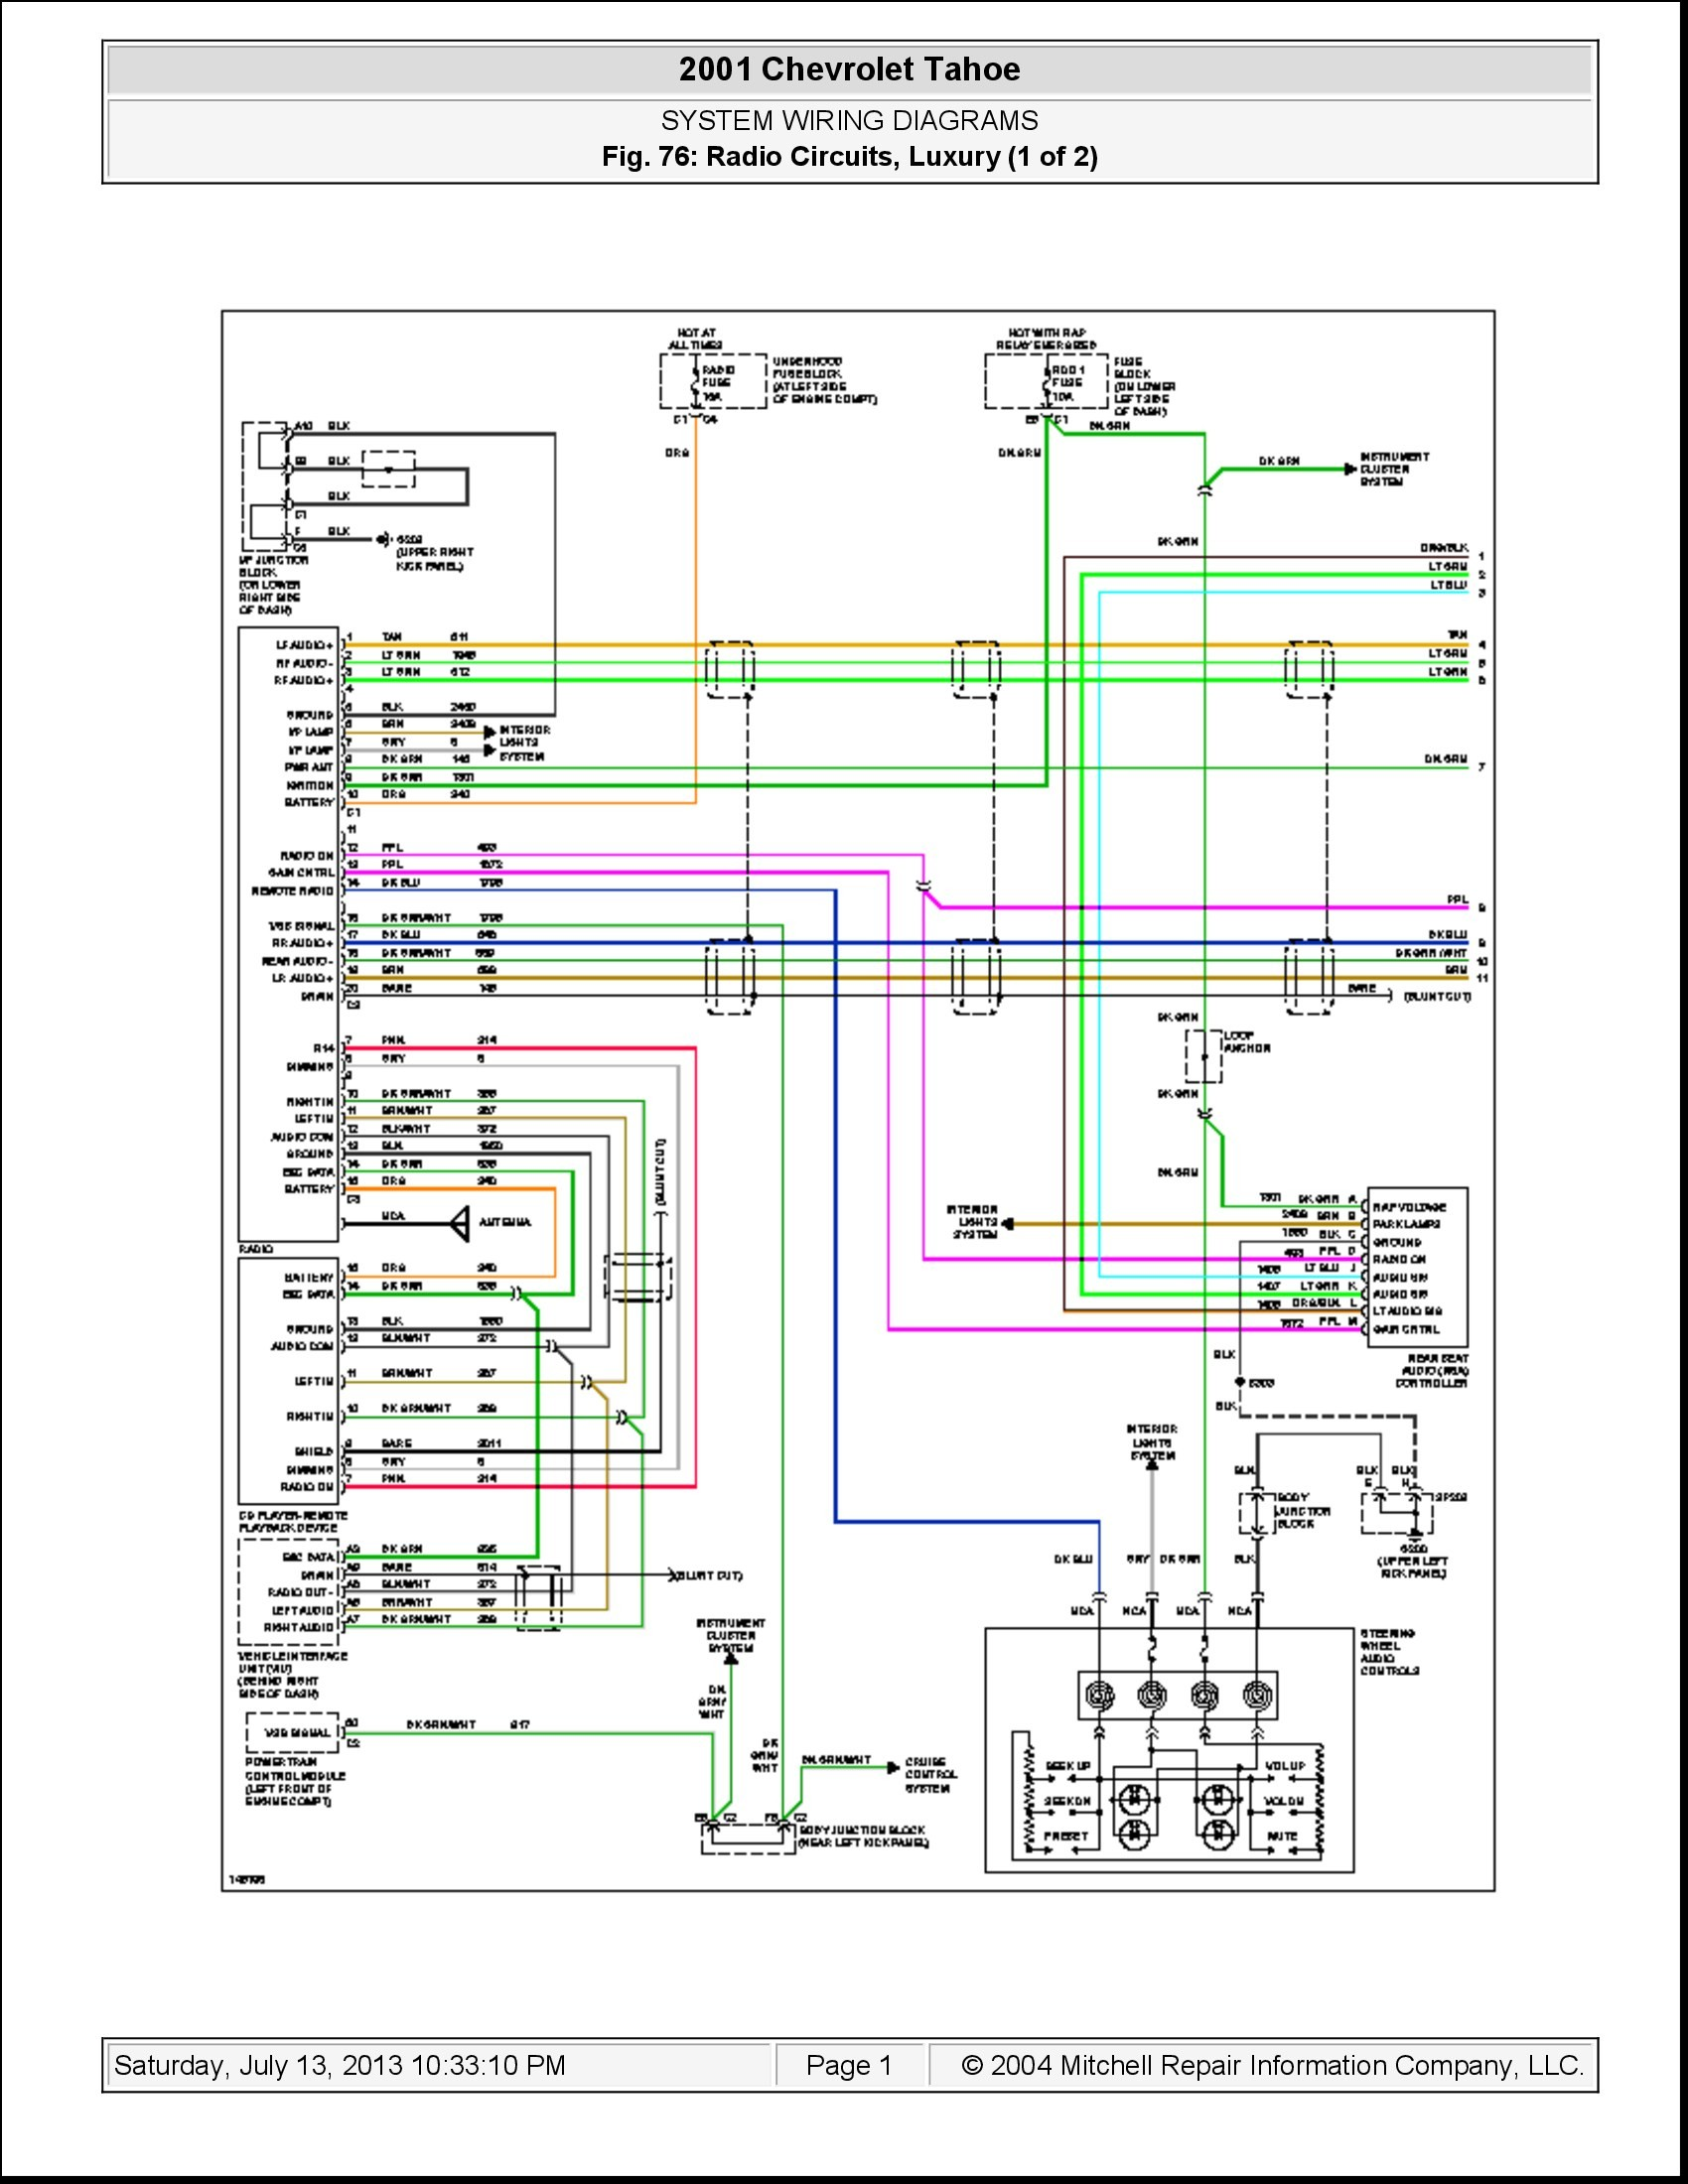 1996 Chevy S10 Wiring Diagram 2001 Chevy S10 Radio Wiring Diagram Collection Of 1996 Chevy S10 Wiring Diagram Ignition Switch Wiring Diagram 2001 Blazer Valid 1996 Chevy Blazer